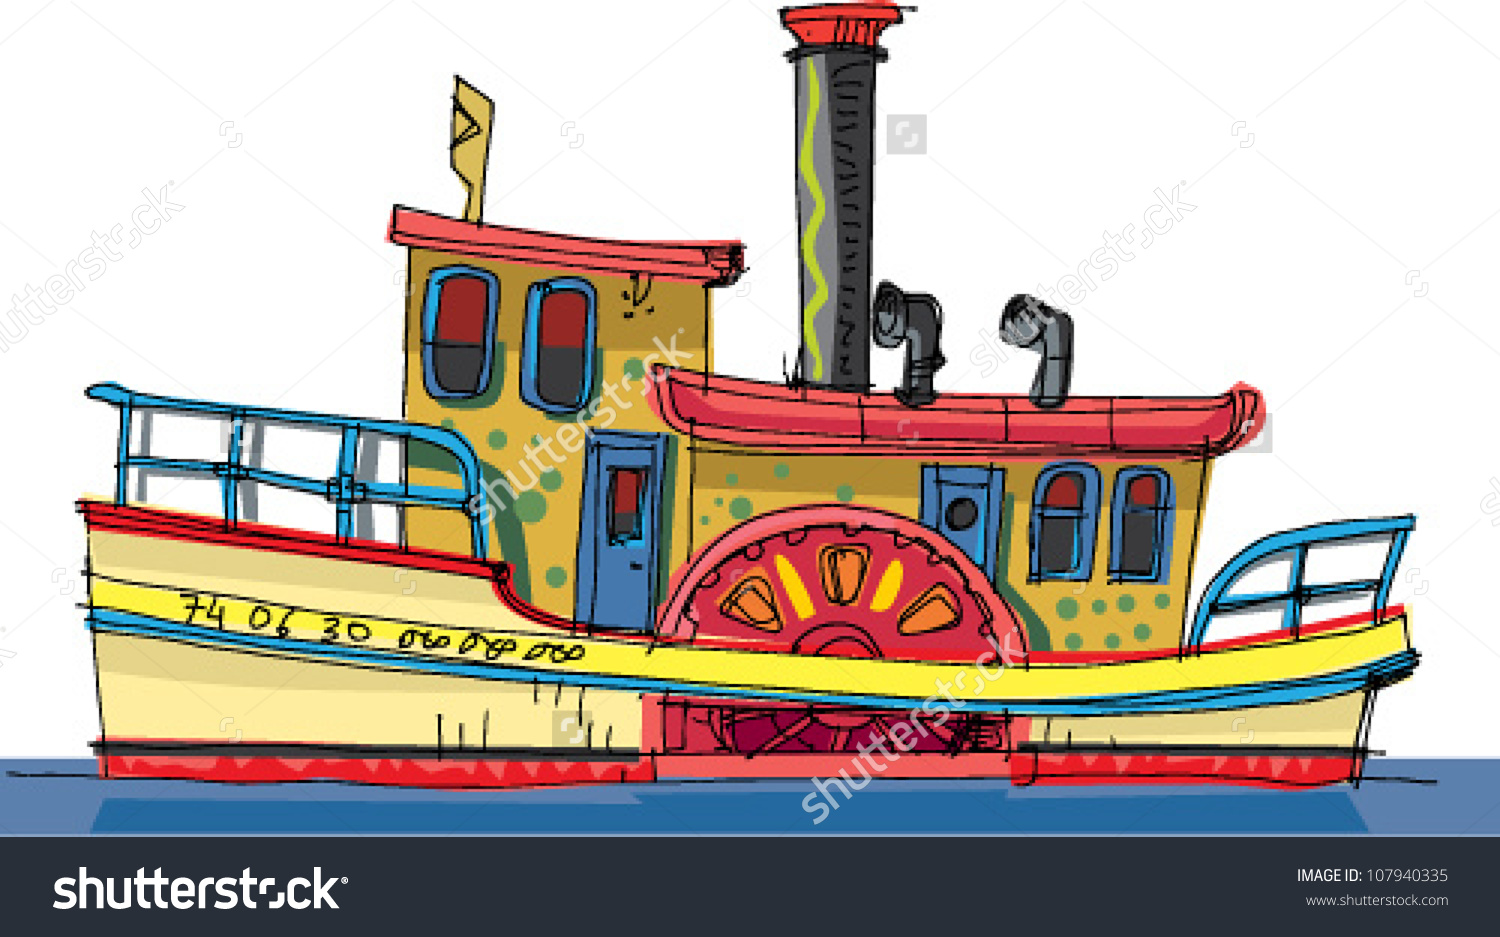 Vintage Steamer Cartoon Stock Vector 107940335.